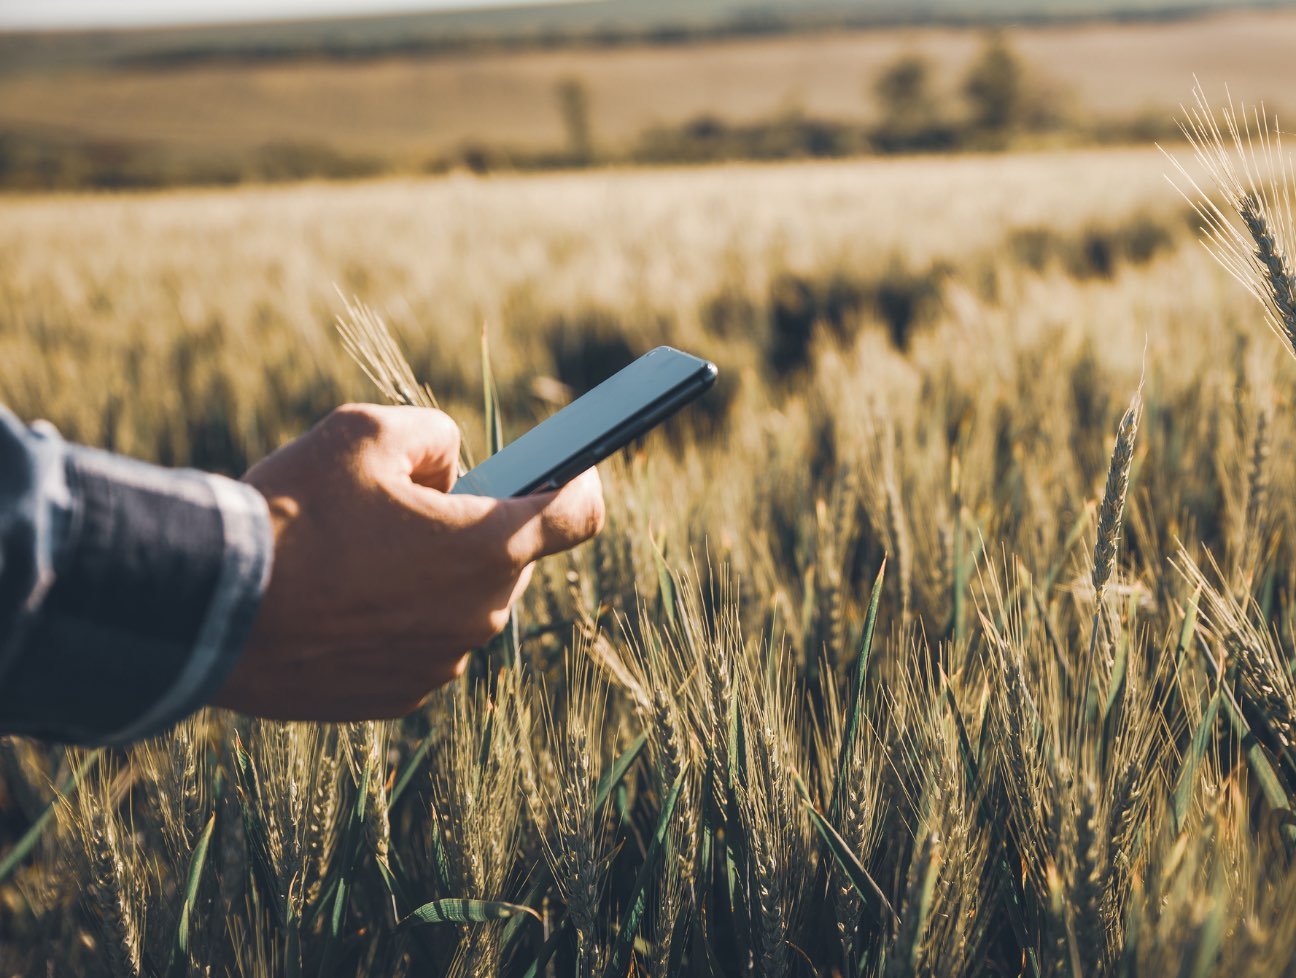 Person holding a cell phone in a field